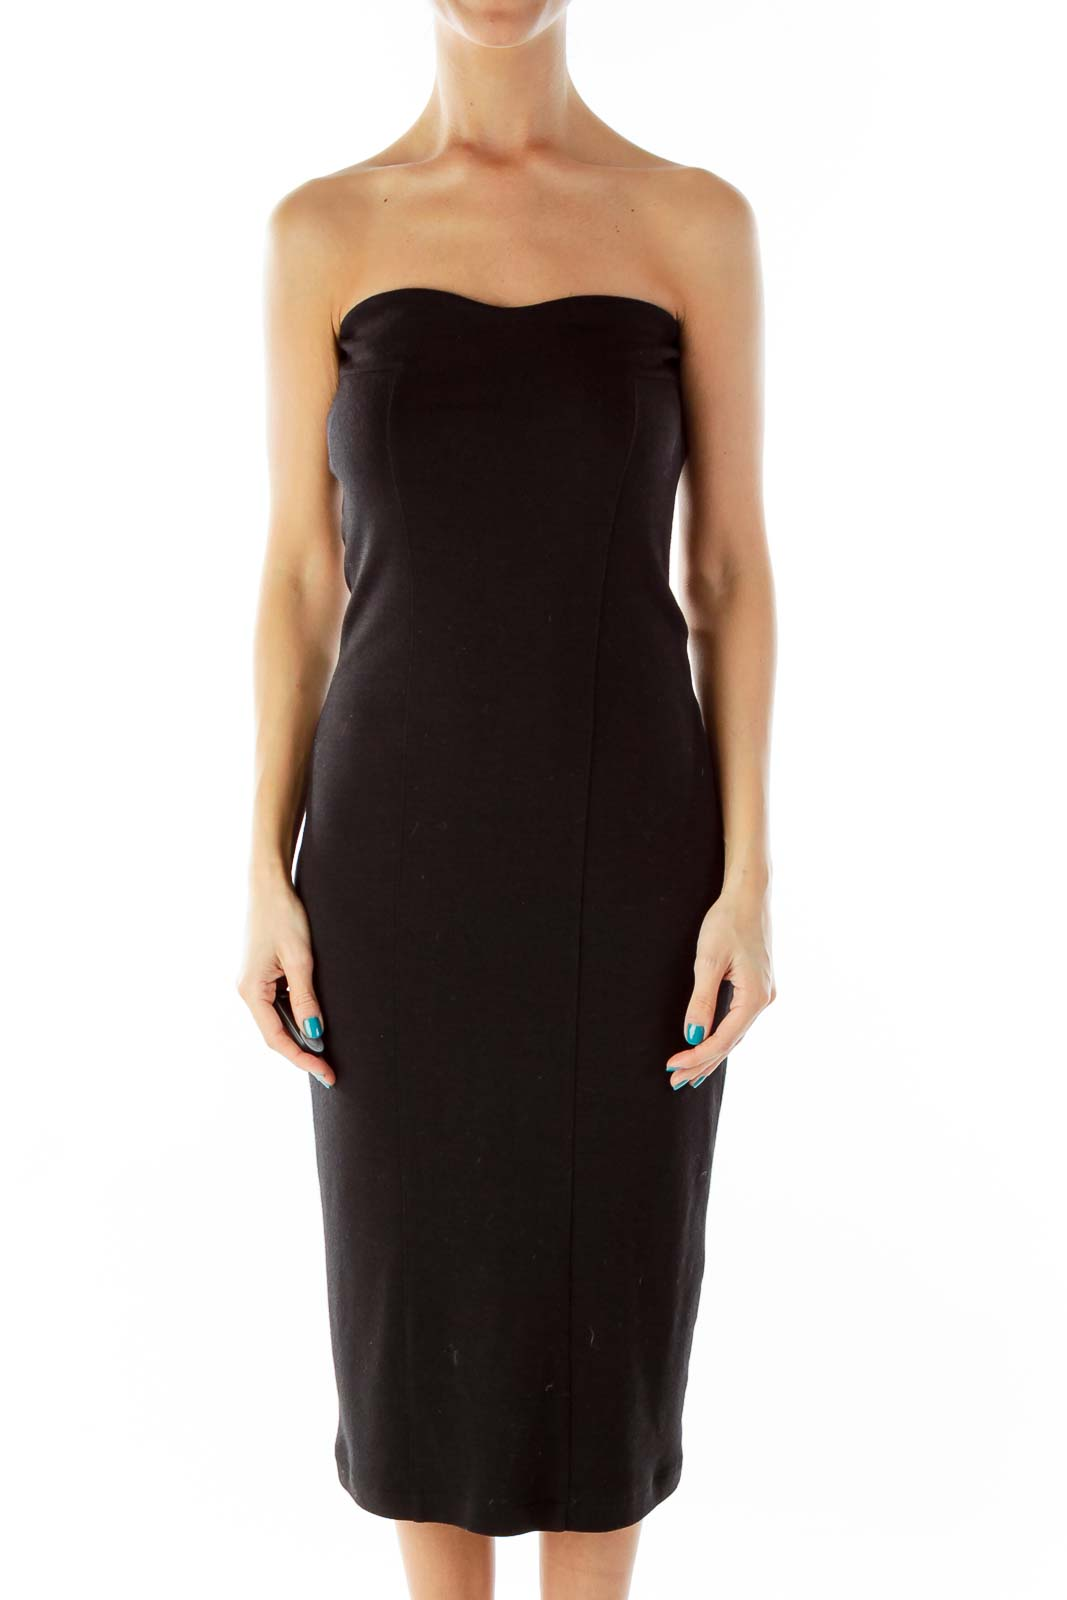 Black Strapless Cocktail Dress Front